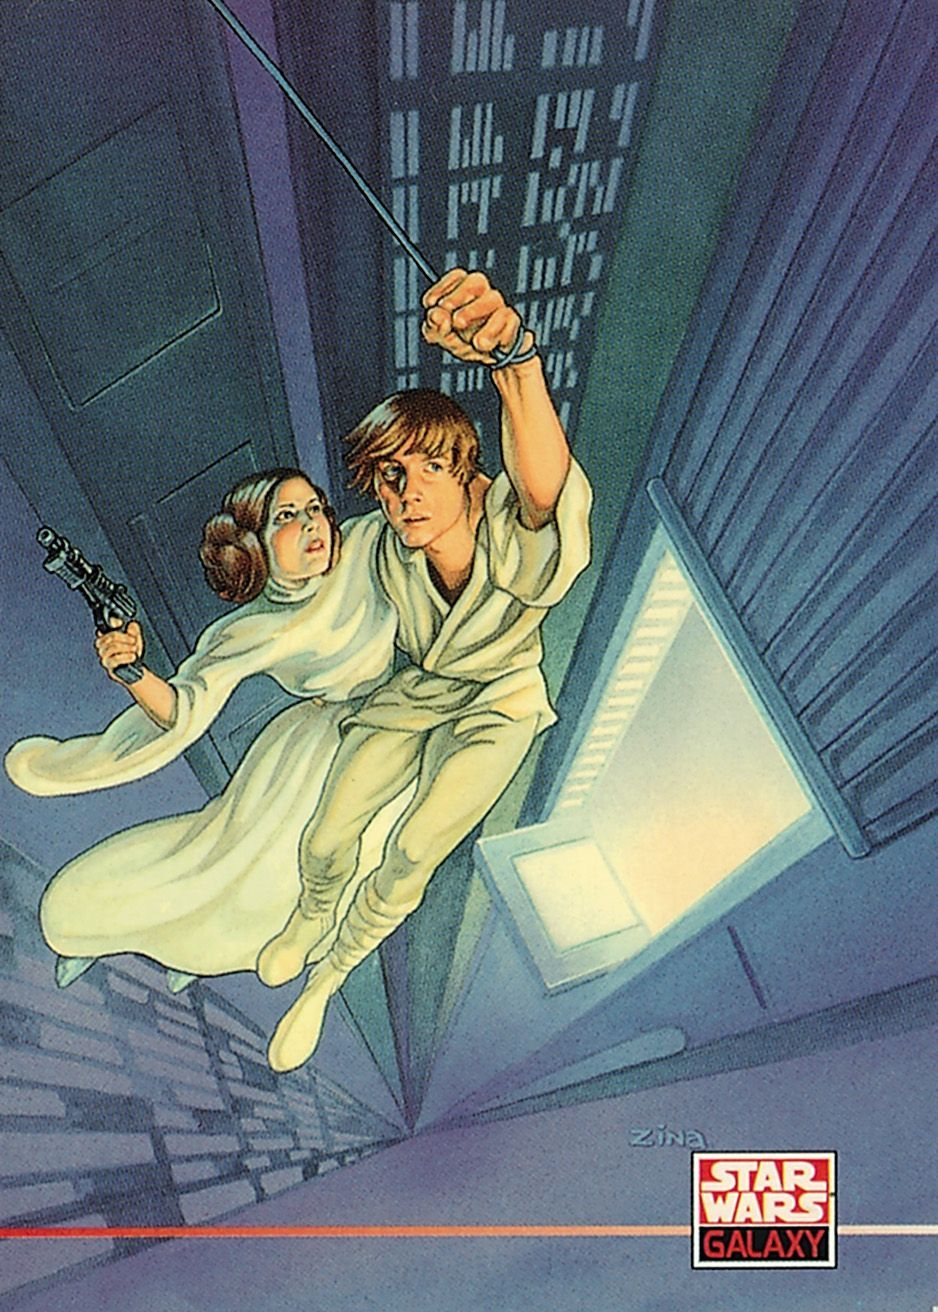 Star Wars, from the comic world's greatest artists | Polygon